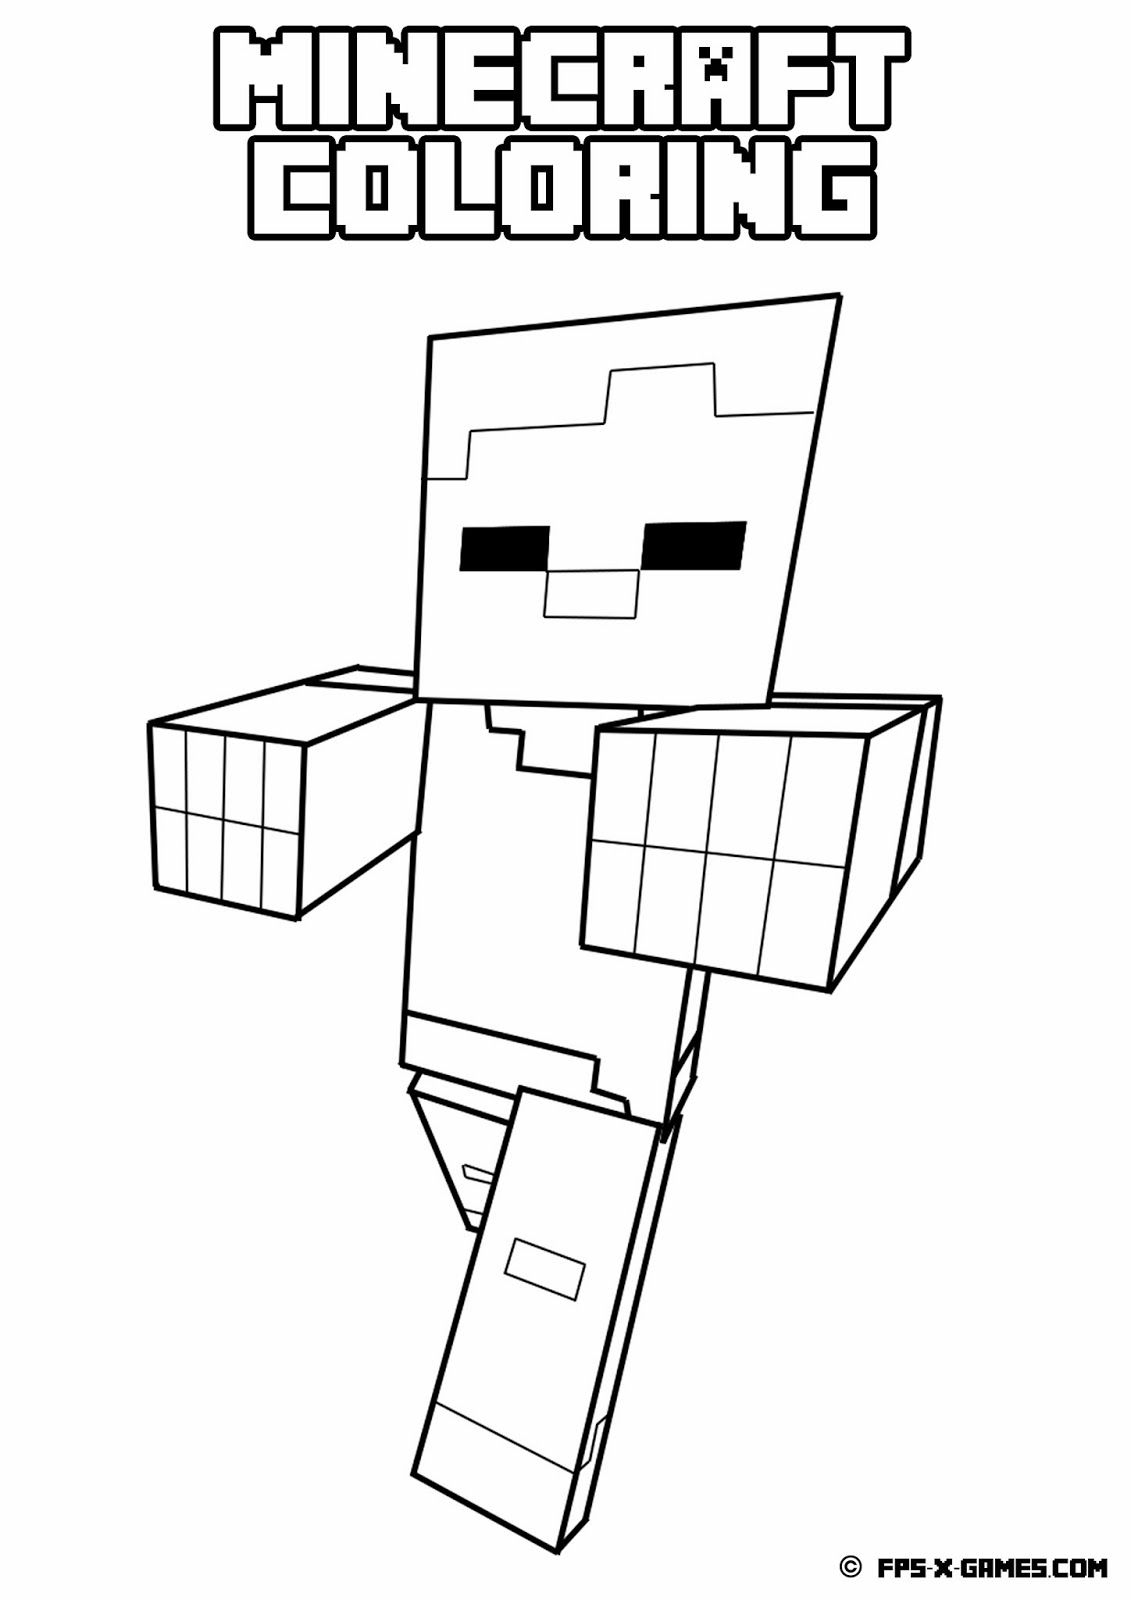 Minecraft Coloring App Printables Fpsxgames Minecraft Coloring Pages Minecraft Printables Minecraft Drawings